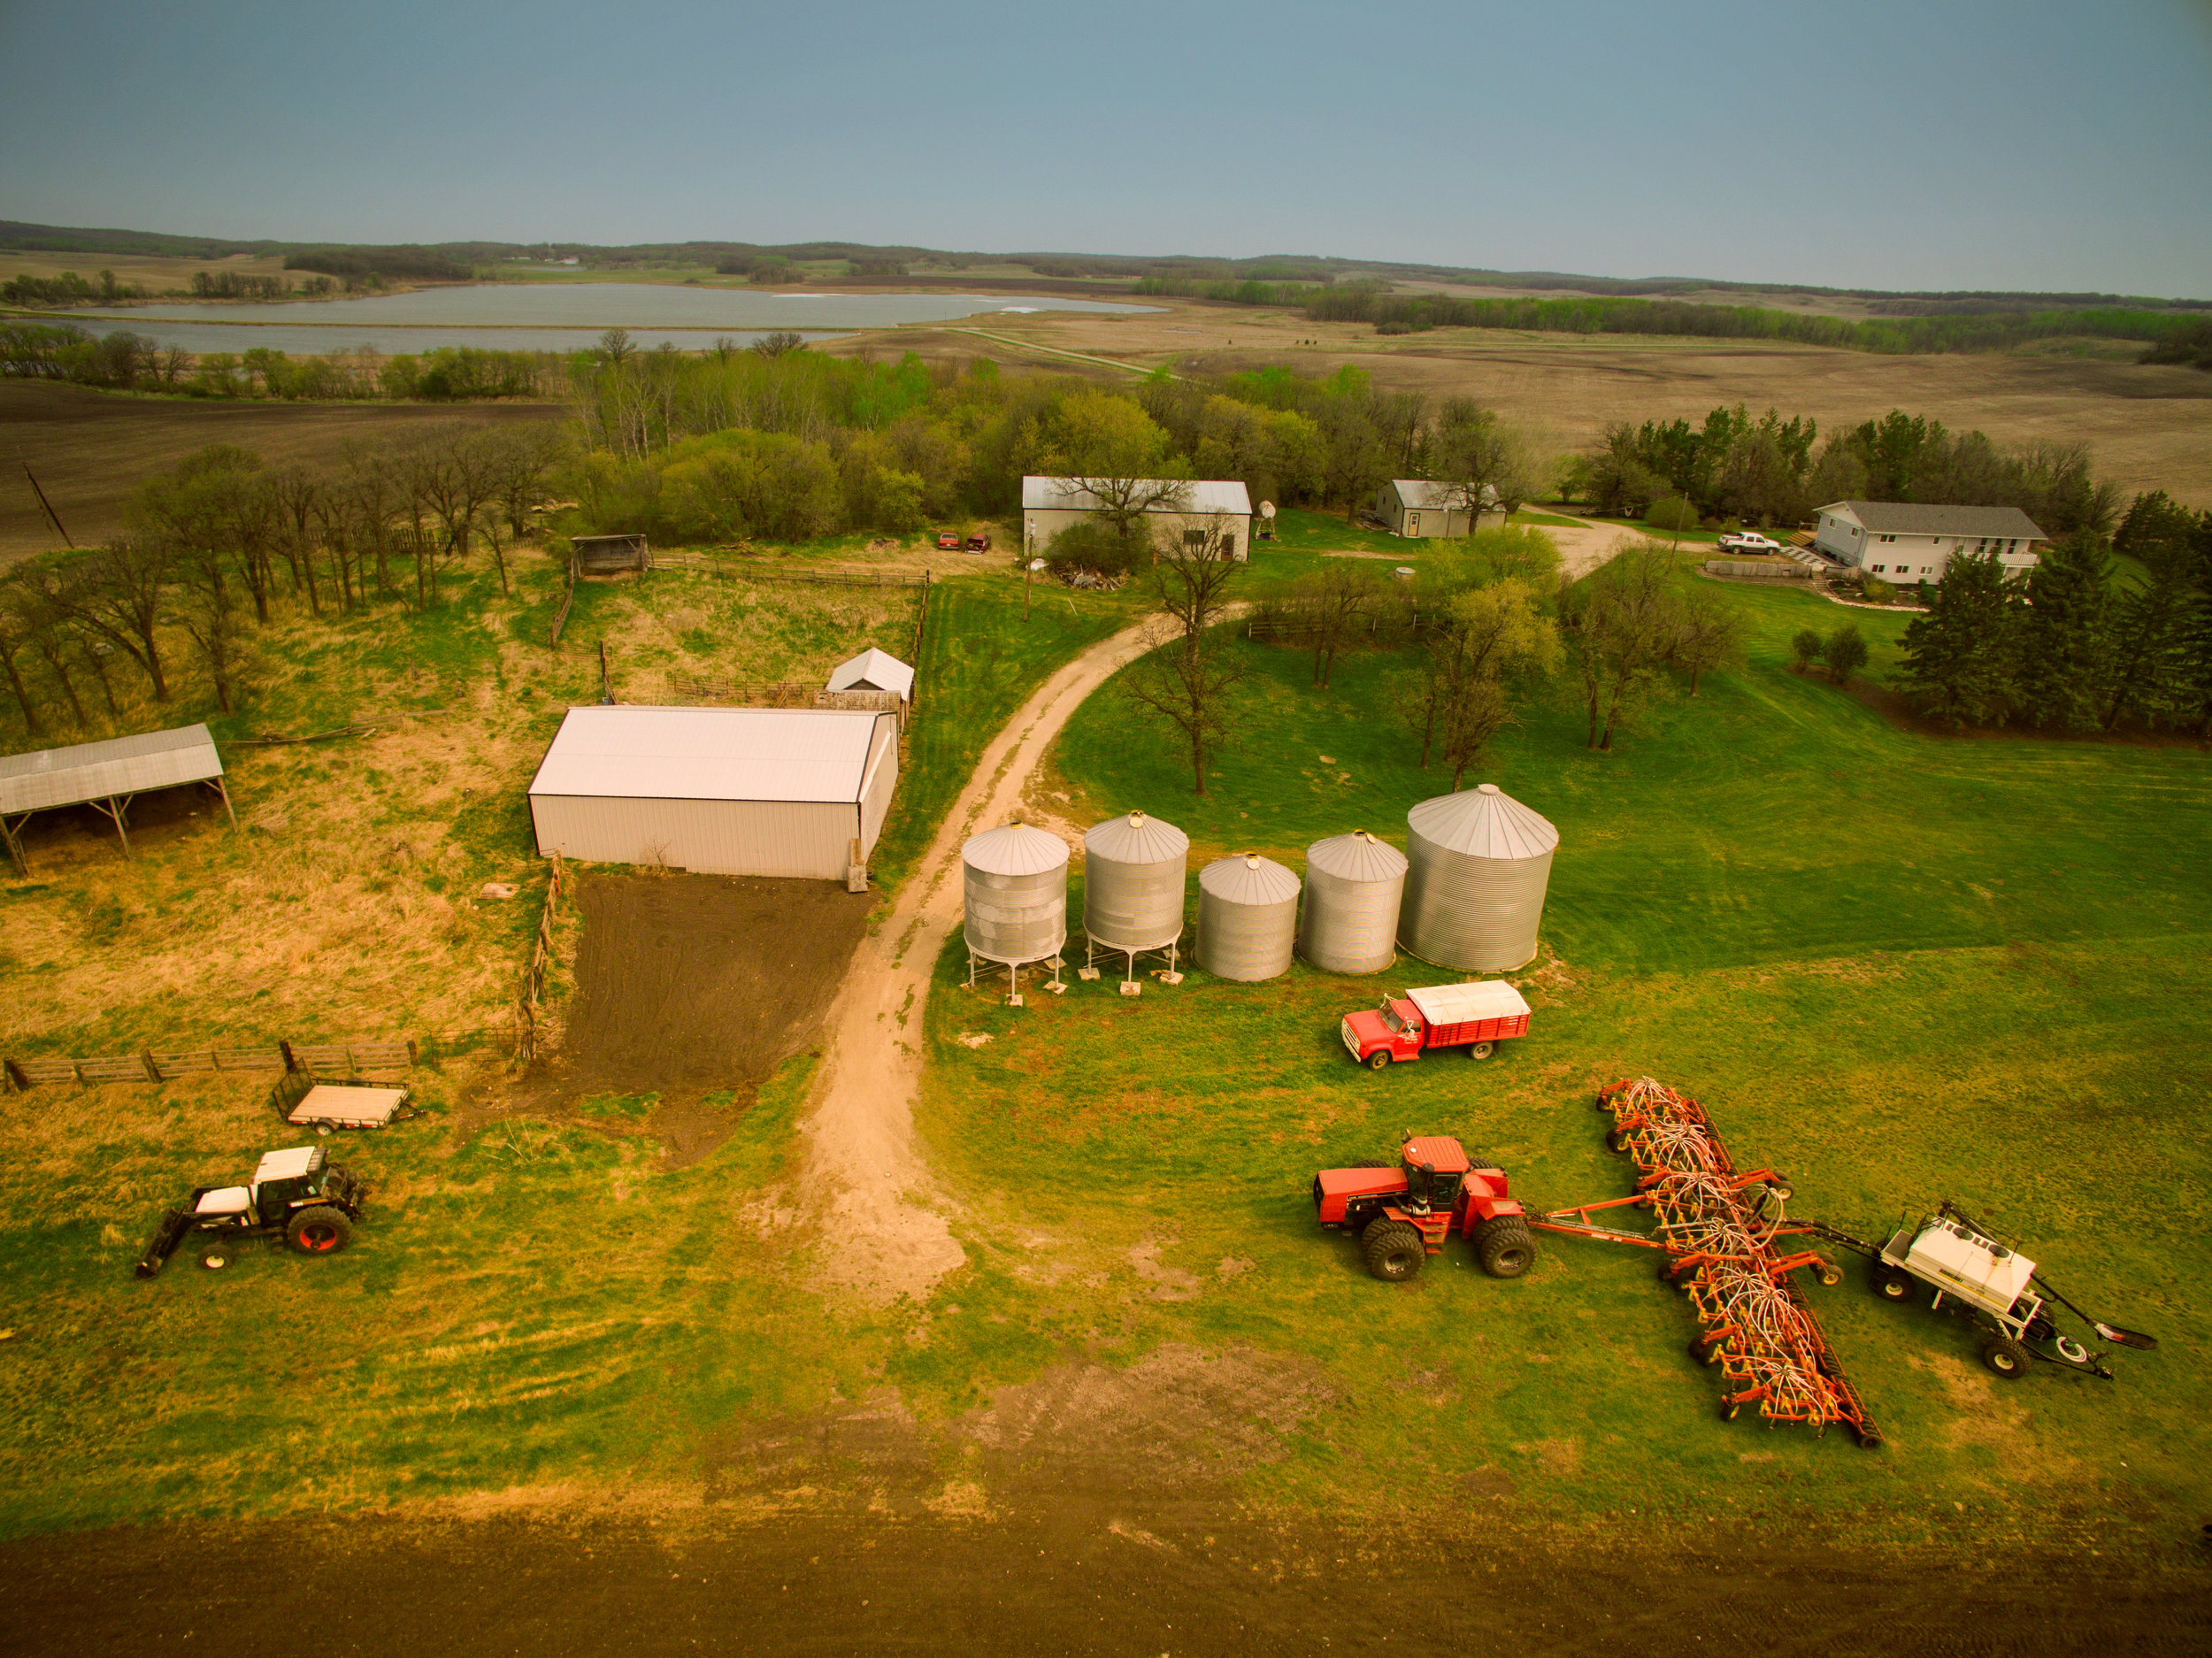 """You can often find Class G airspace """"in the middle of nowhere"""" - but not always. Always check if a small airport may be located nearby even when you are operating at the farm, or cottage - somewhere you think is quite remote."""